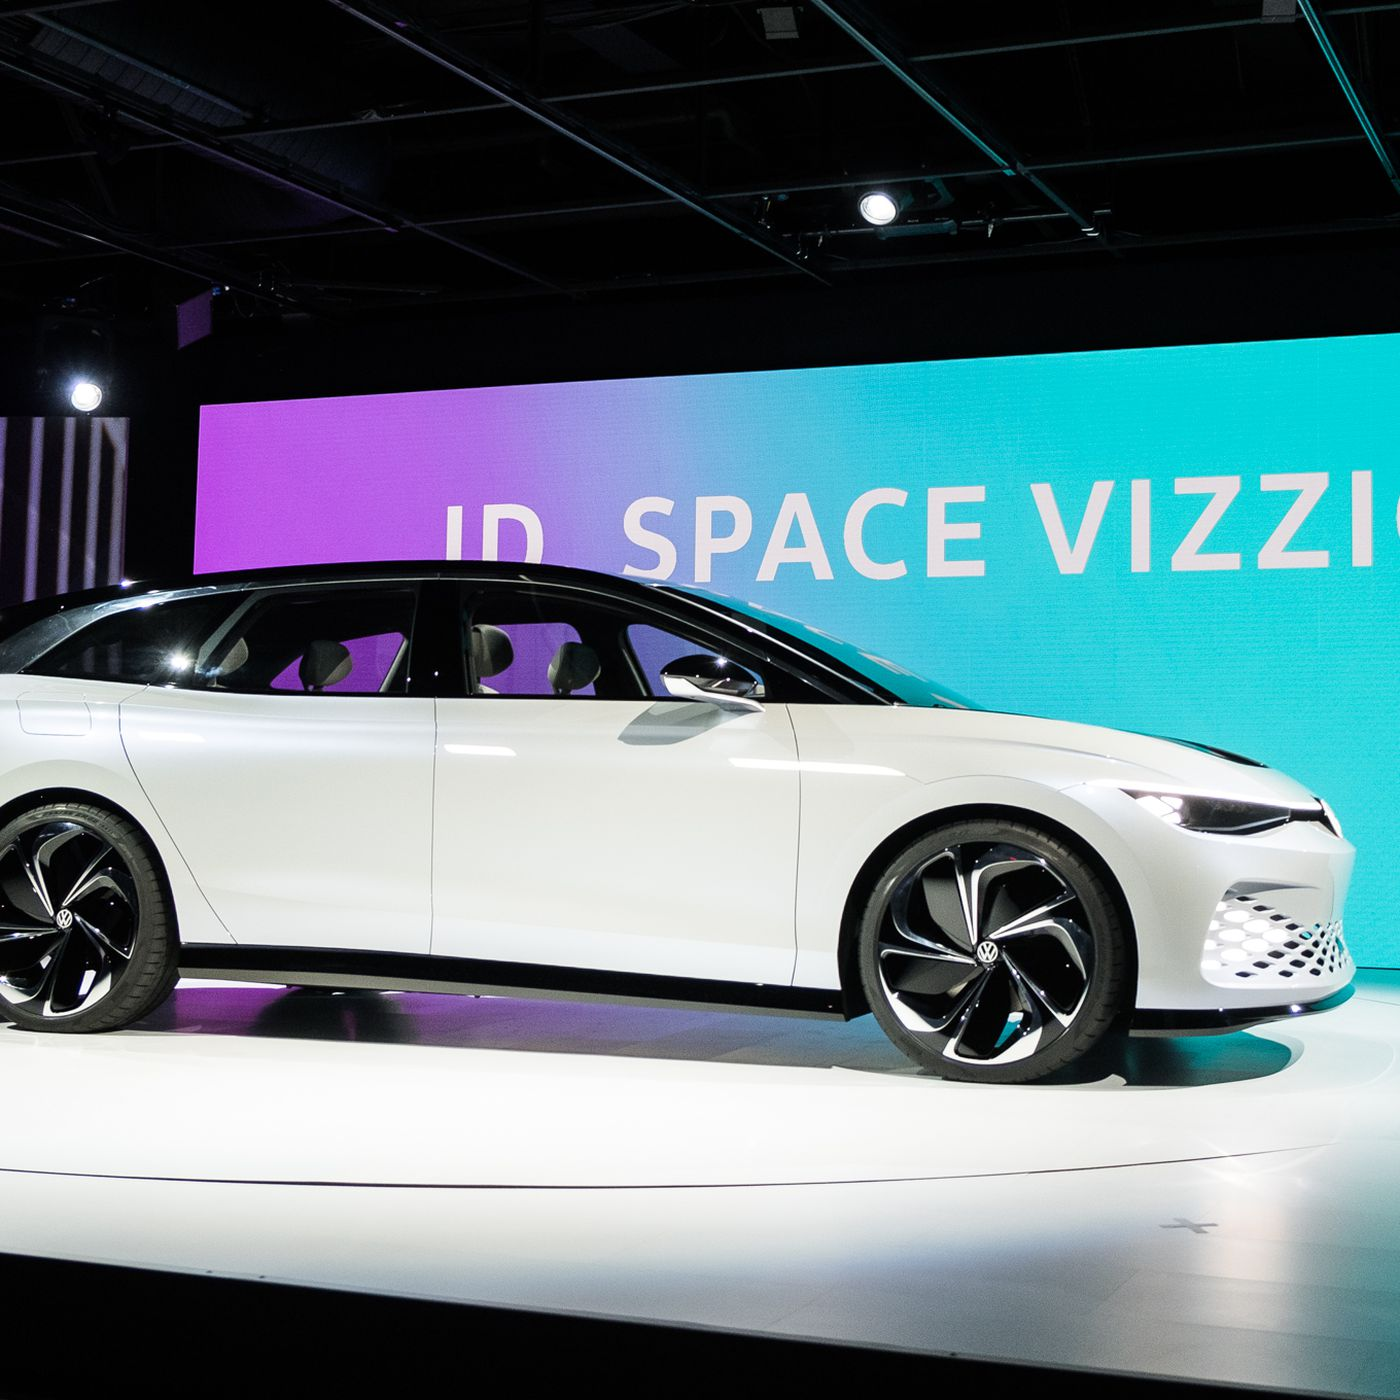 Volkswagen's ID Space Vizzion is an electric wagon that goes